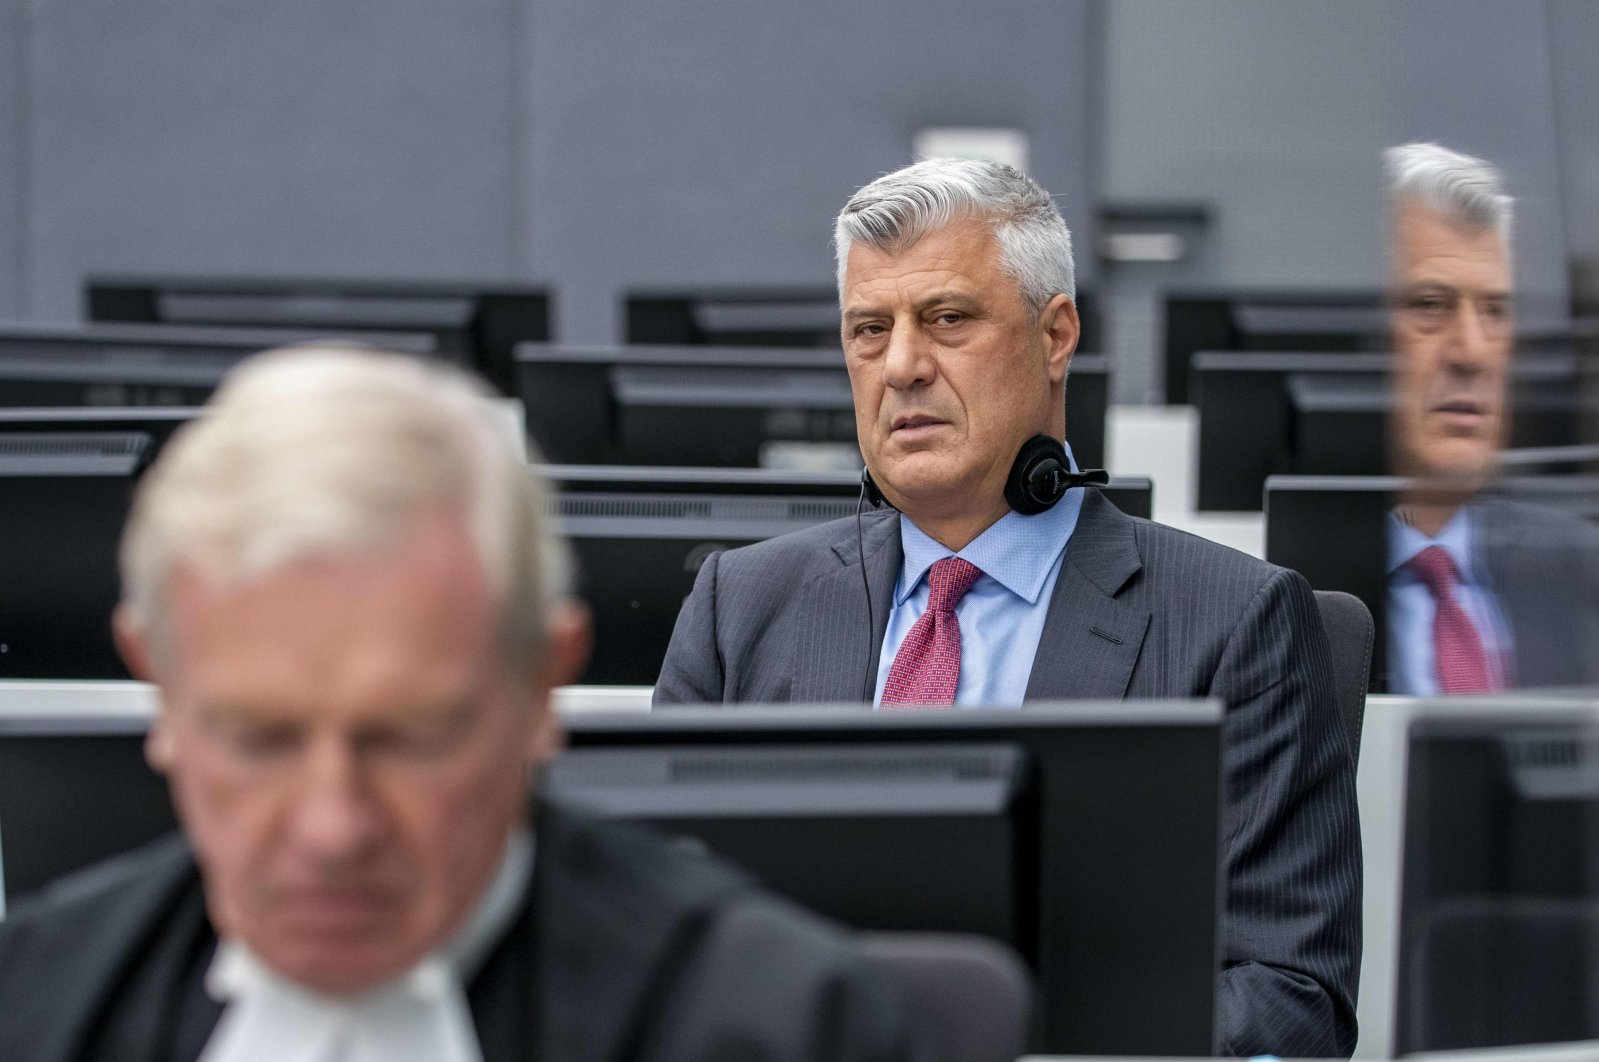 Former Kosovar president Hashim Thaci sits with his lawyer David Hooper (L) for the first time before a war crimes court in The Hague, the Netherlands, to face charges relating to the 1990s conflict with Serbia, Nov. 9, 2020. (AFP Photo)